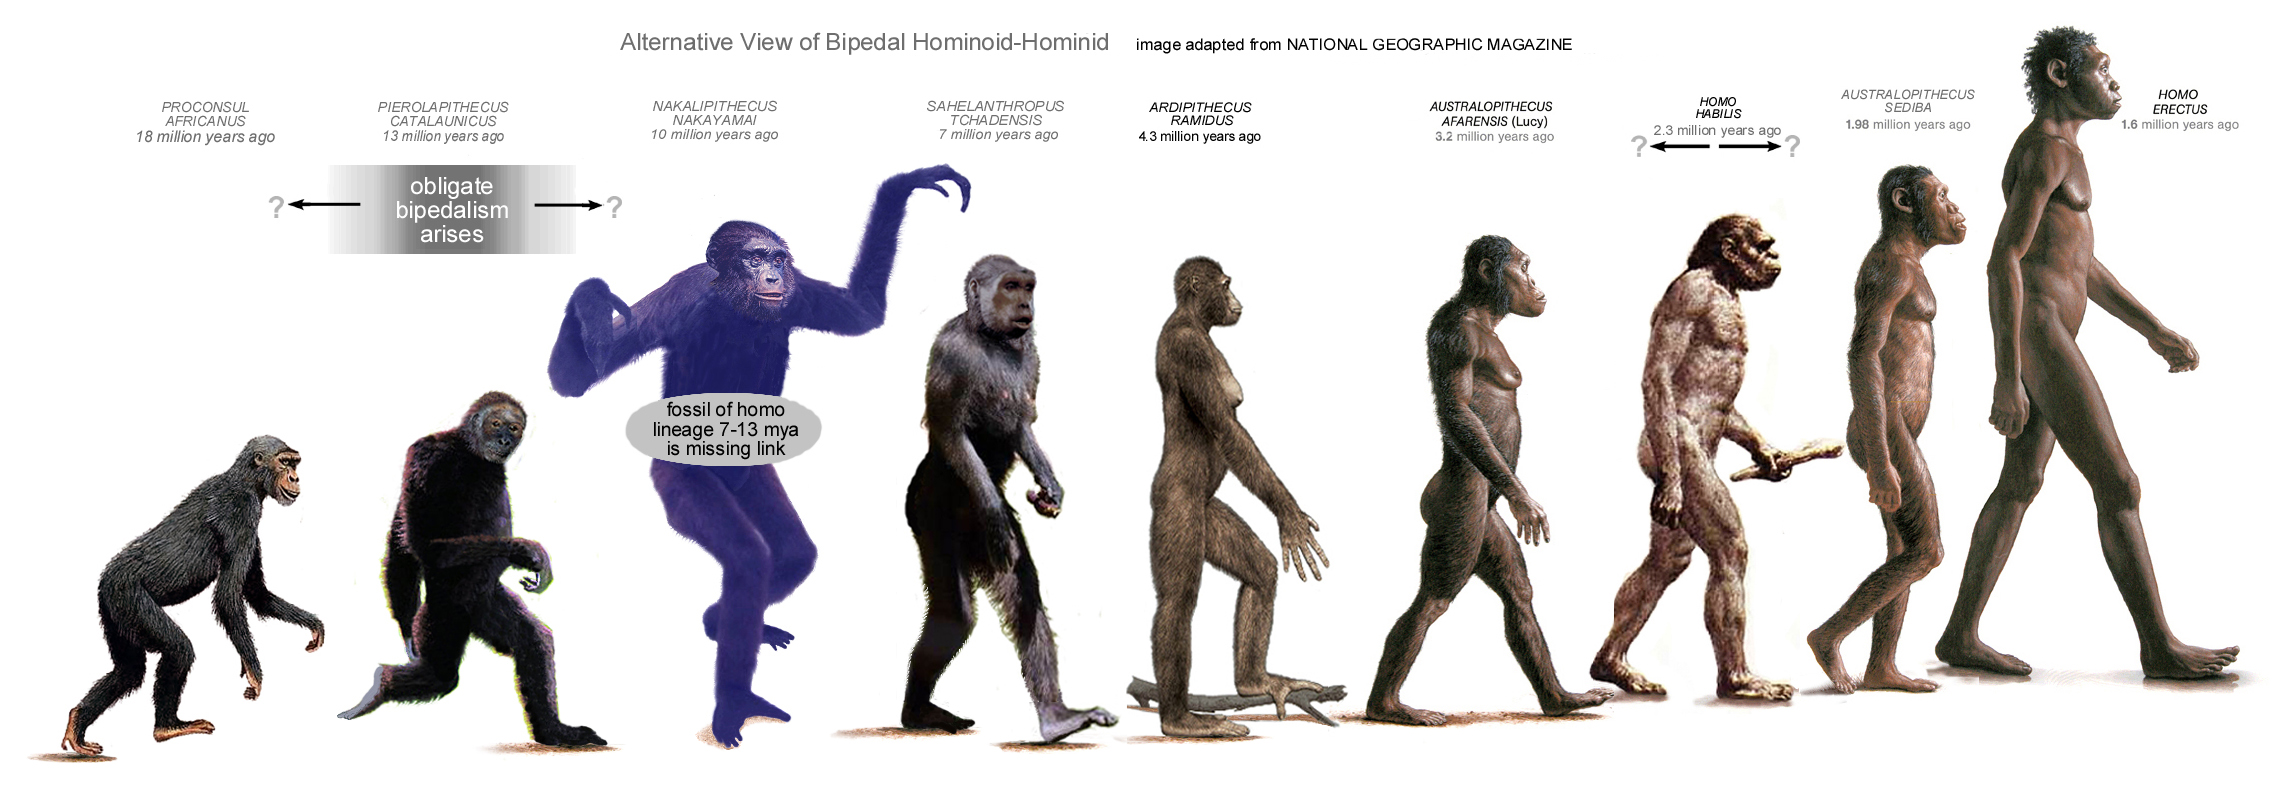 the evidence of bipedal locomotion in early hominids